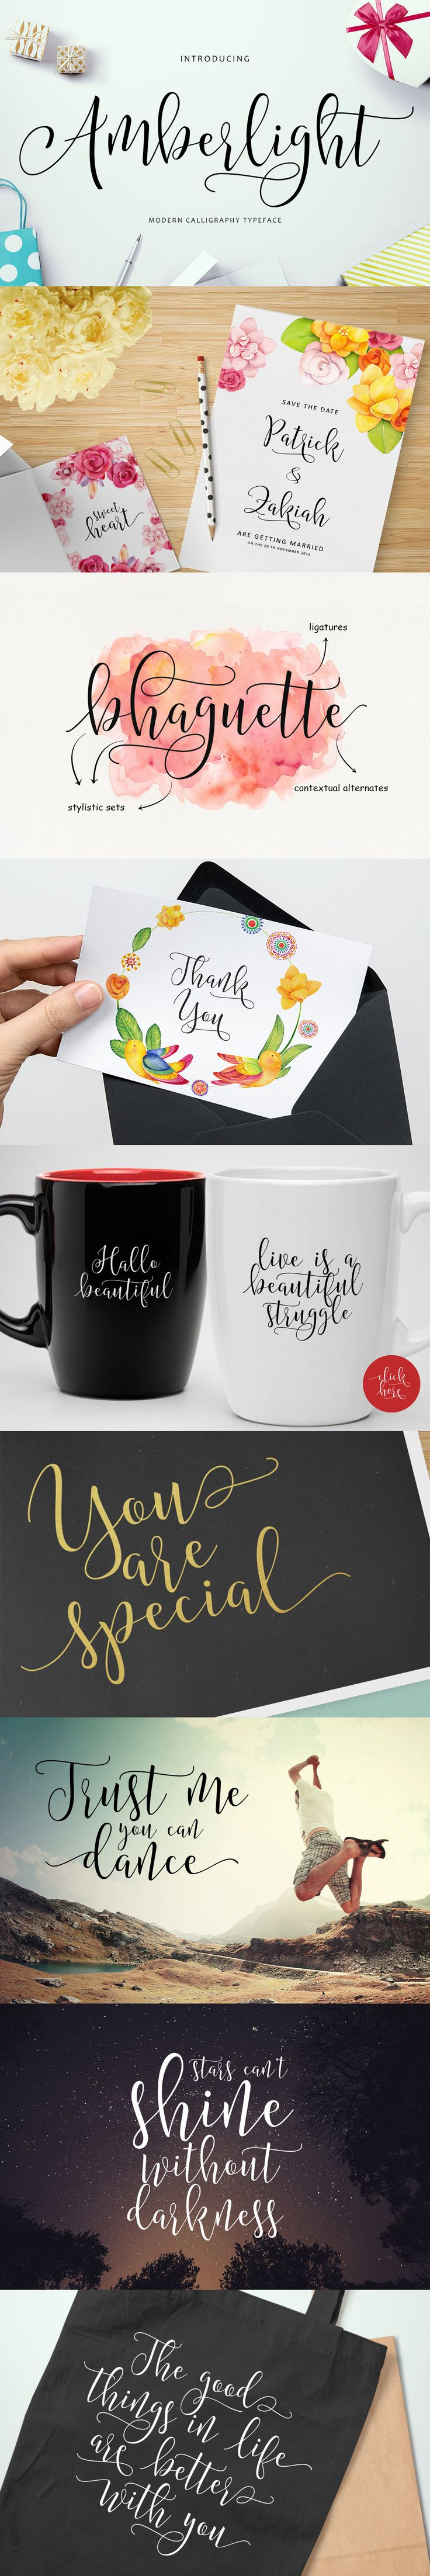 Amberlight is a new, modern, calligraphy style font typeface.